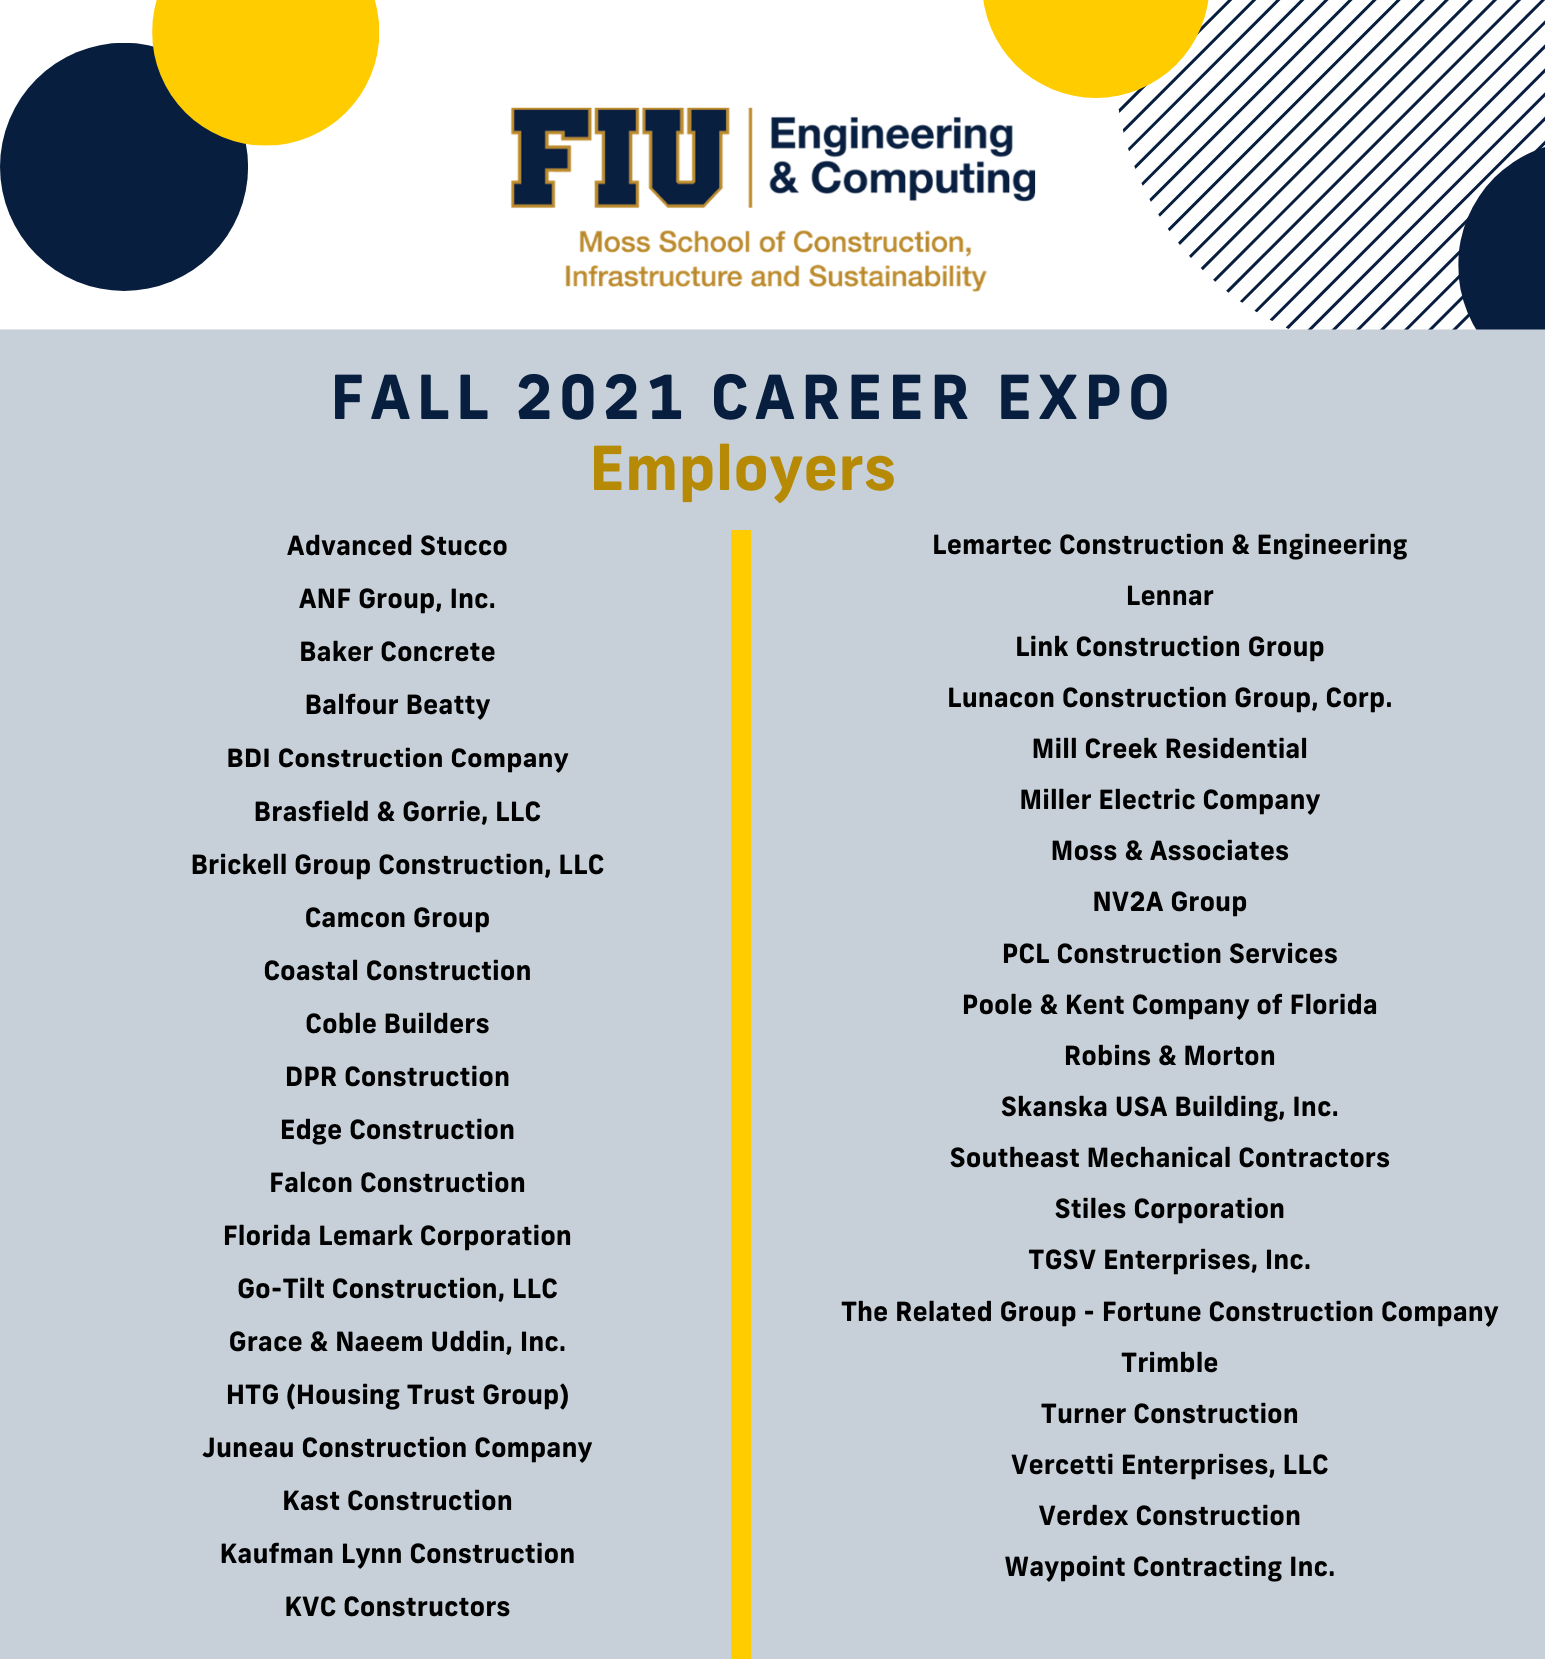 attending companies for the fall 2021 career expo